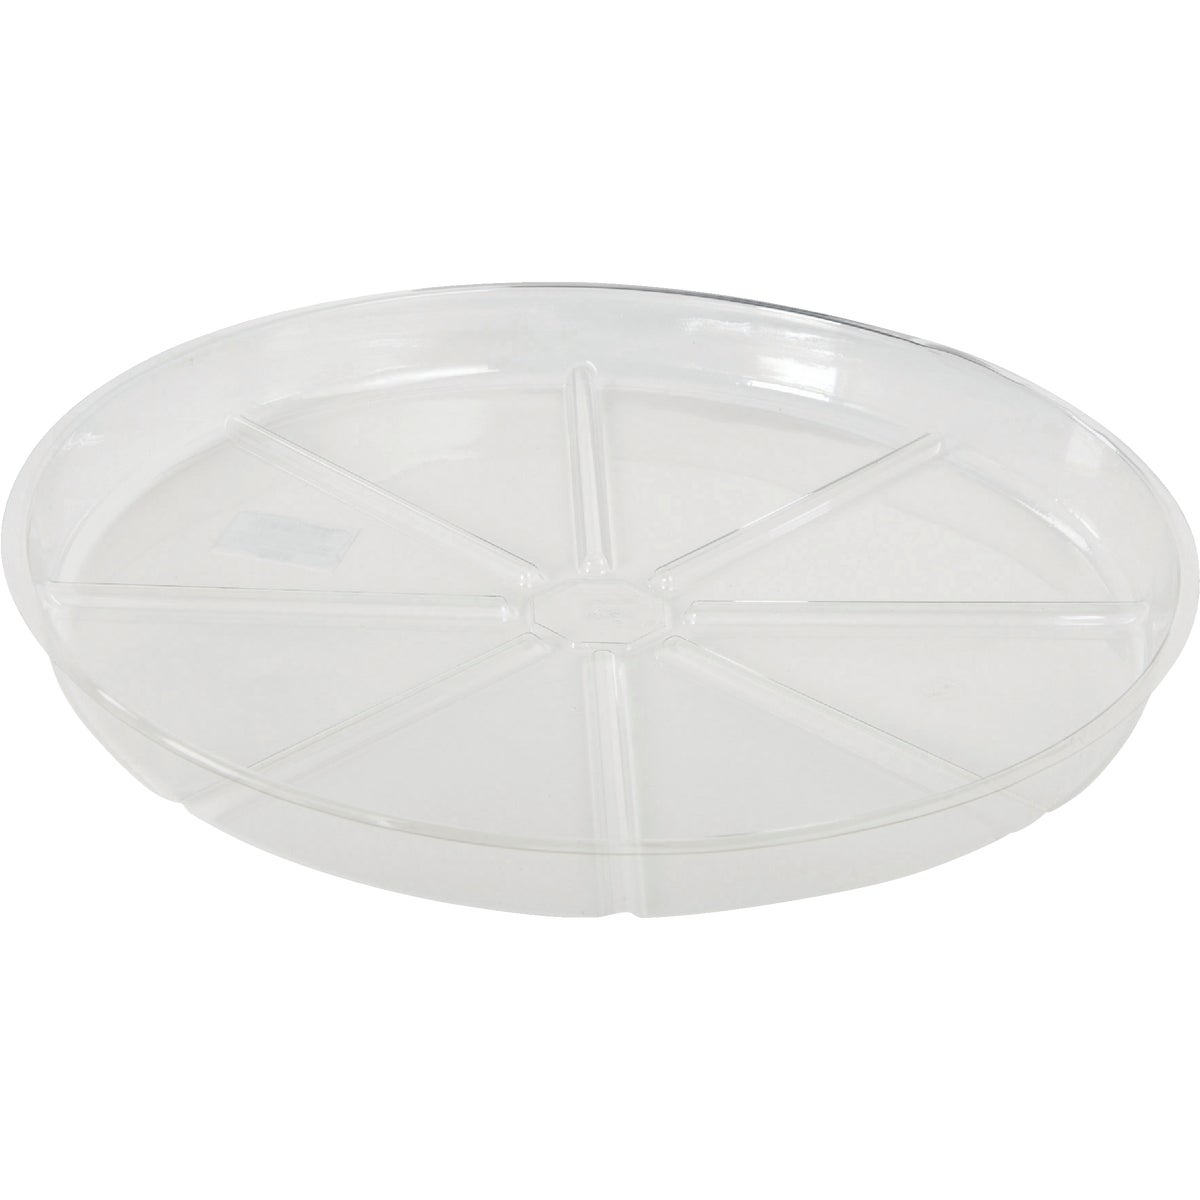 "14"" CLEAR VINYL SAUCER - VS14 by Woodstream Corp"